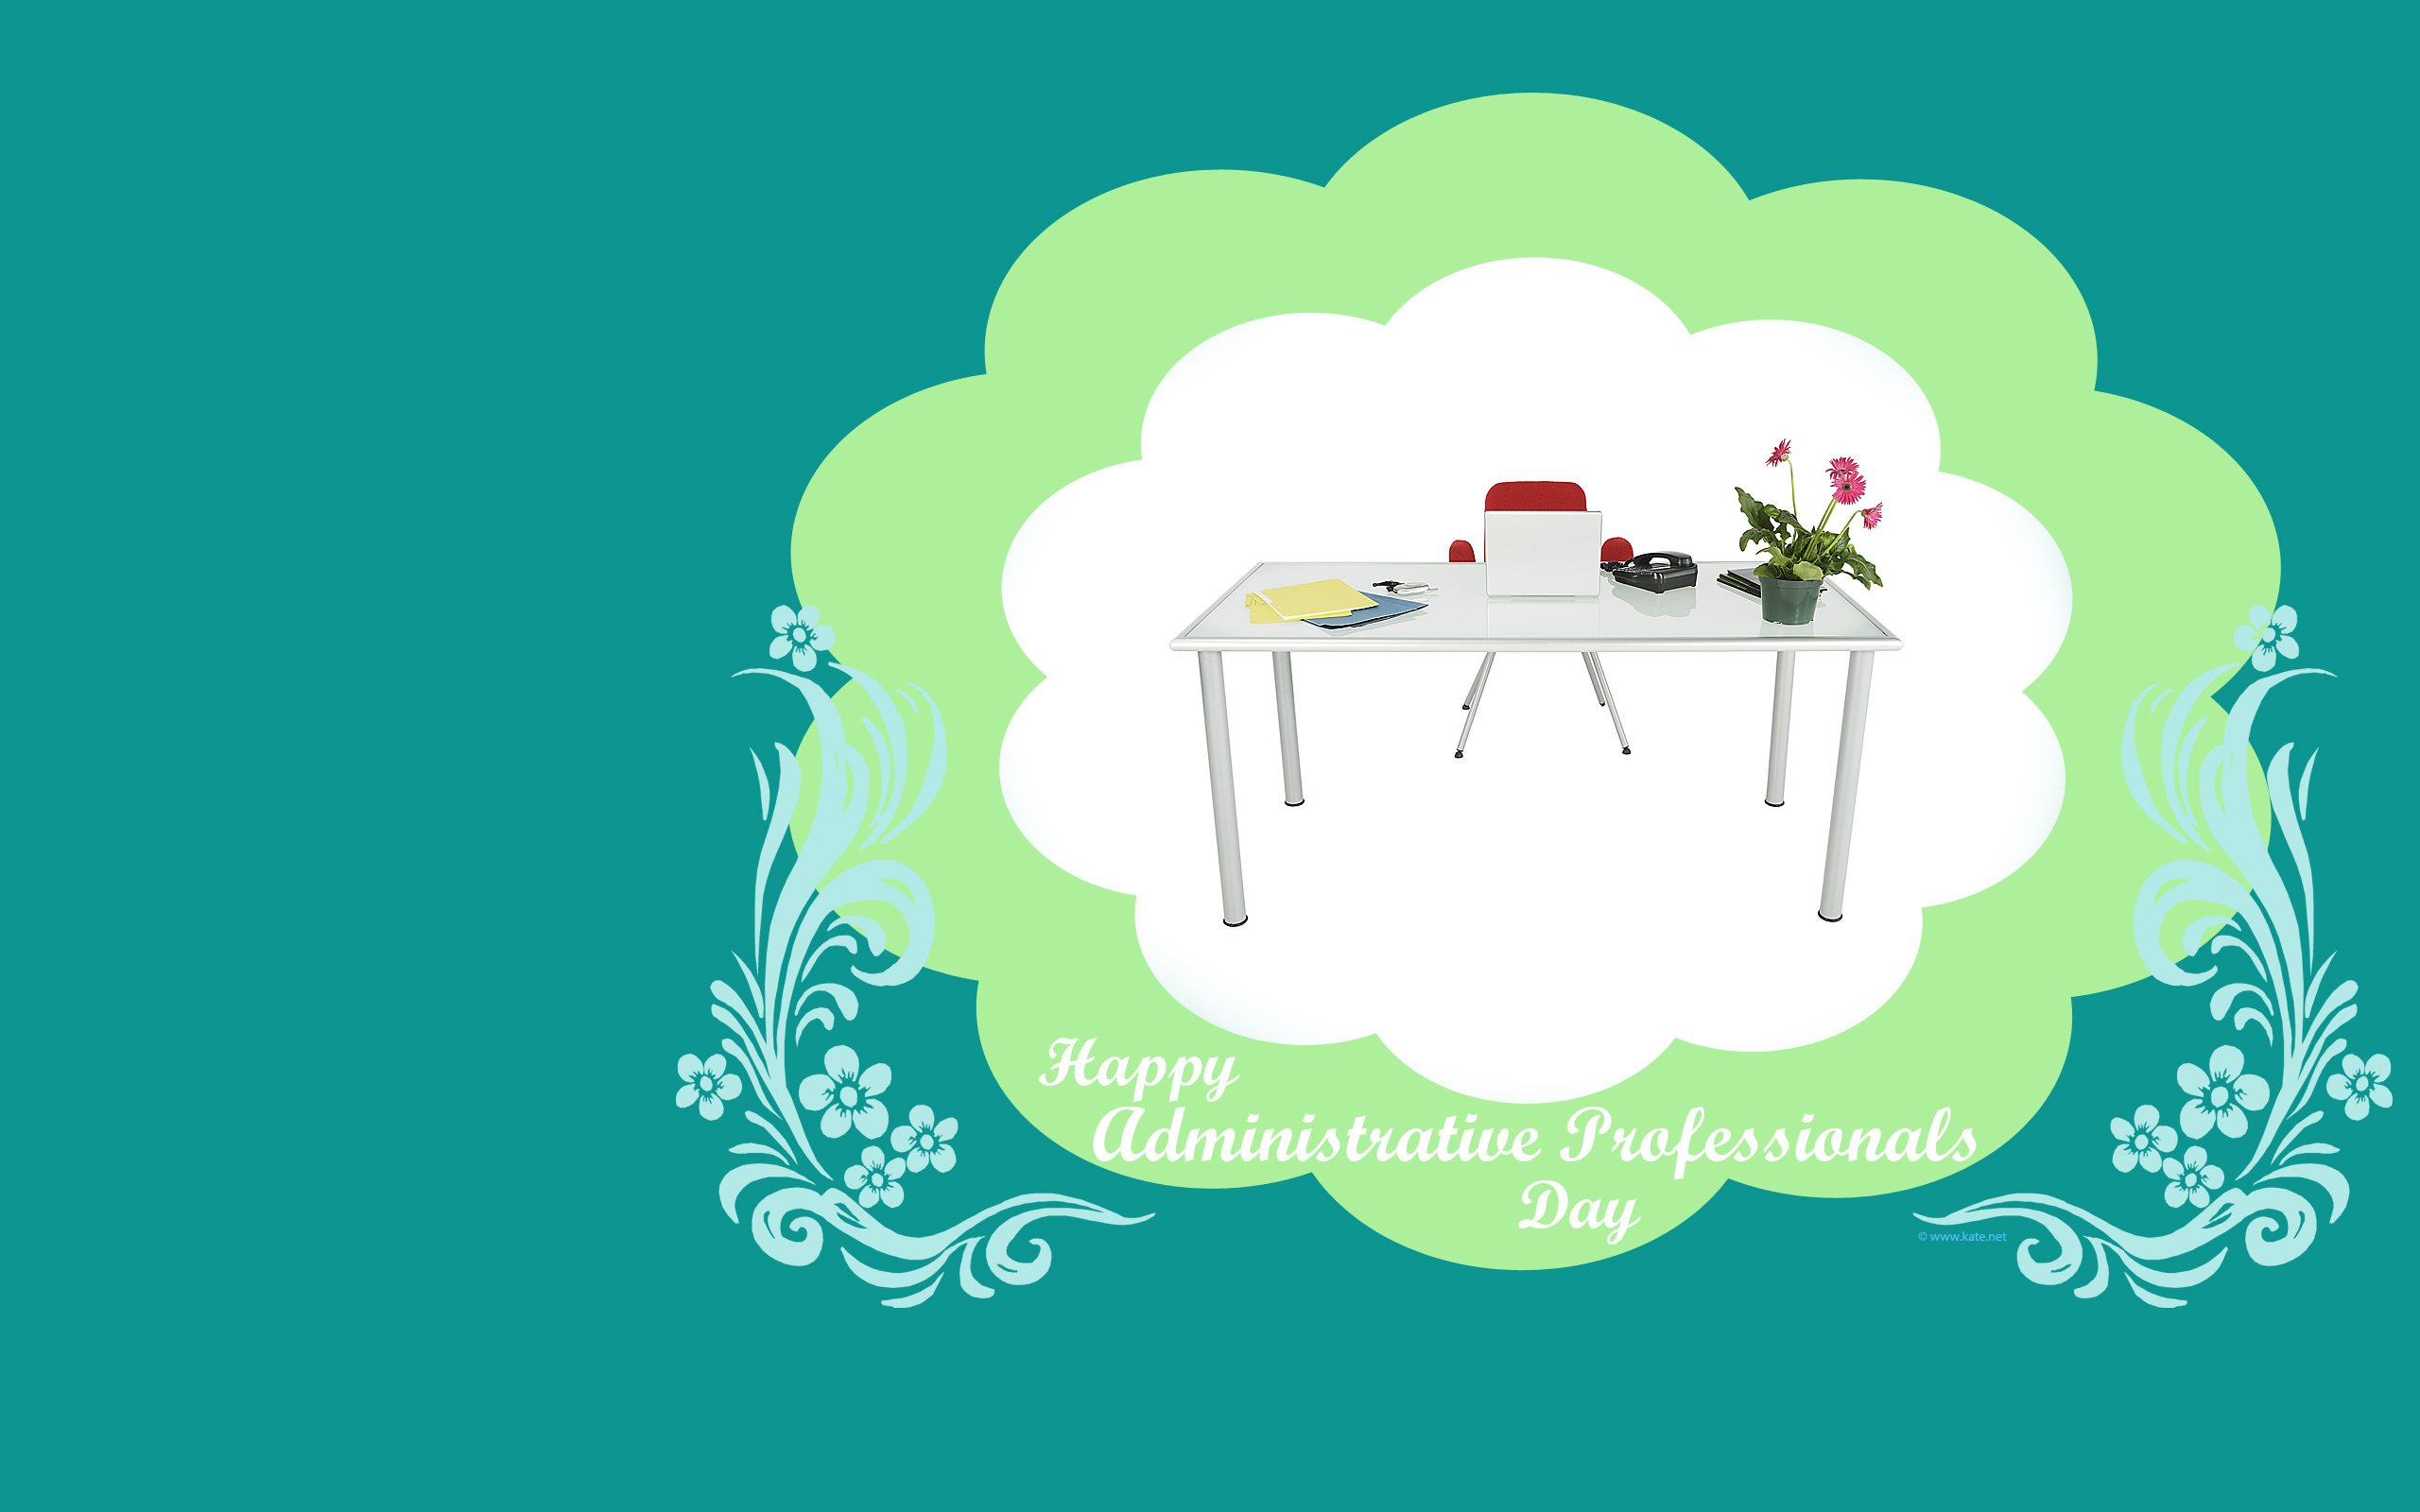 Administrative Professionals Day Clip Art N21 free image.